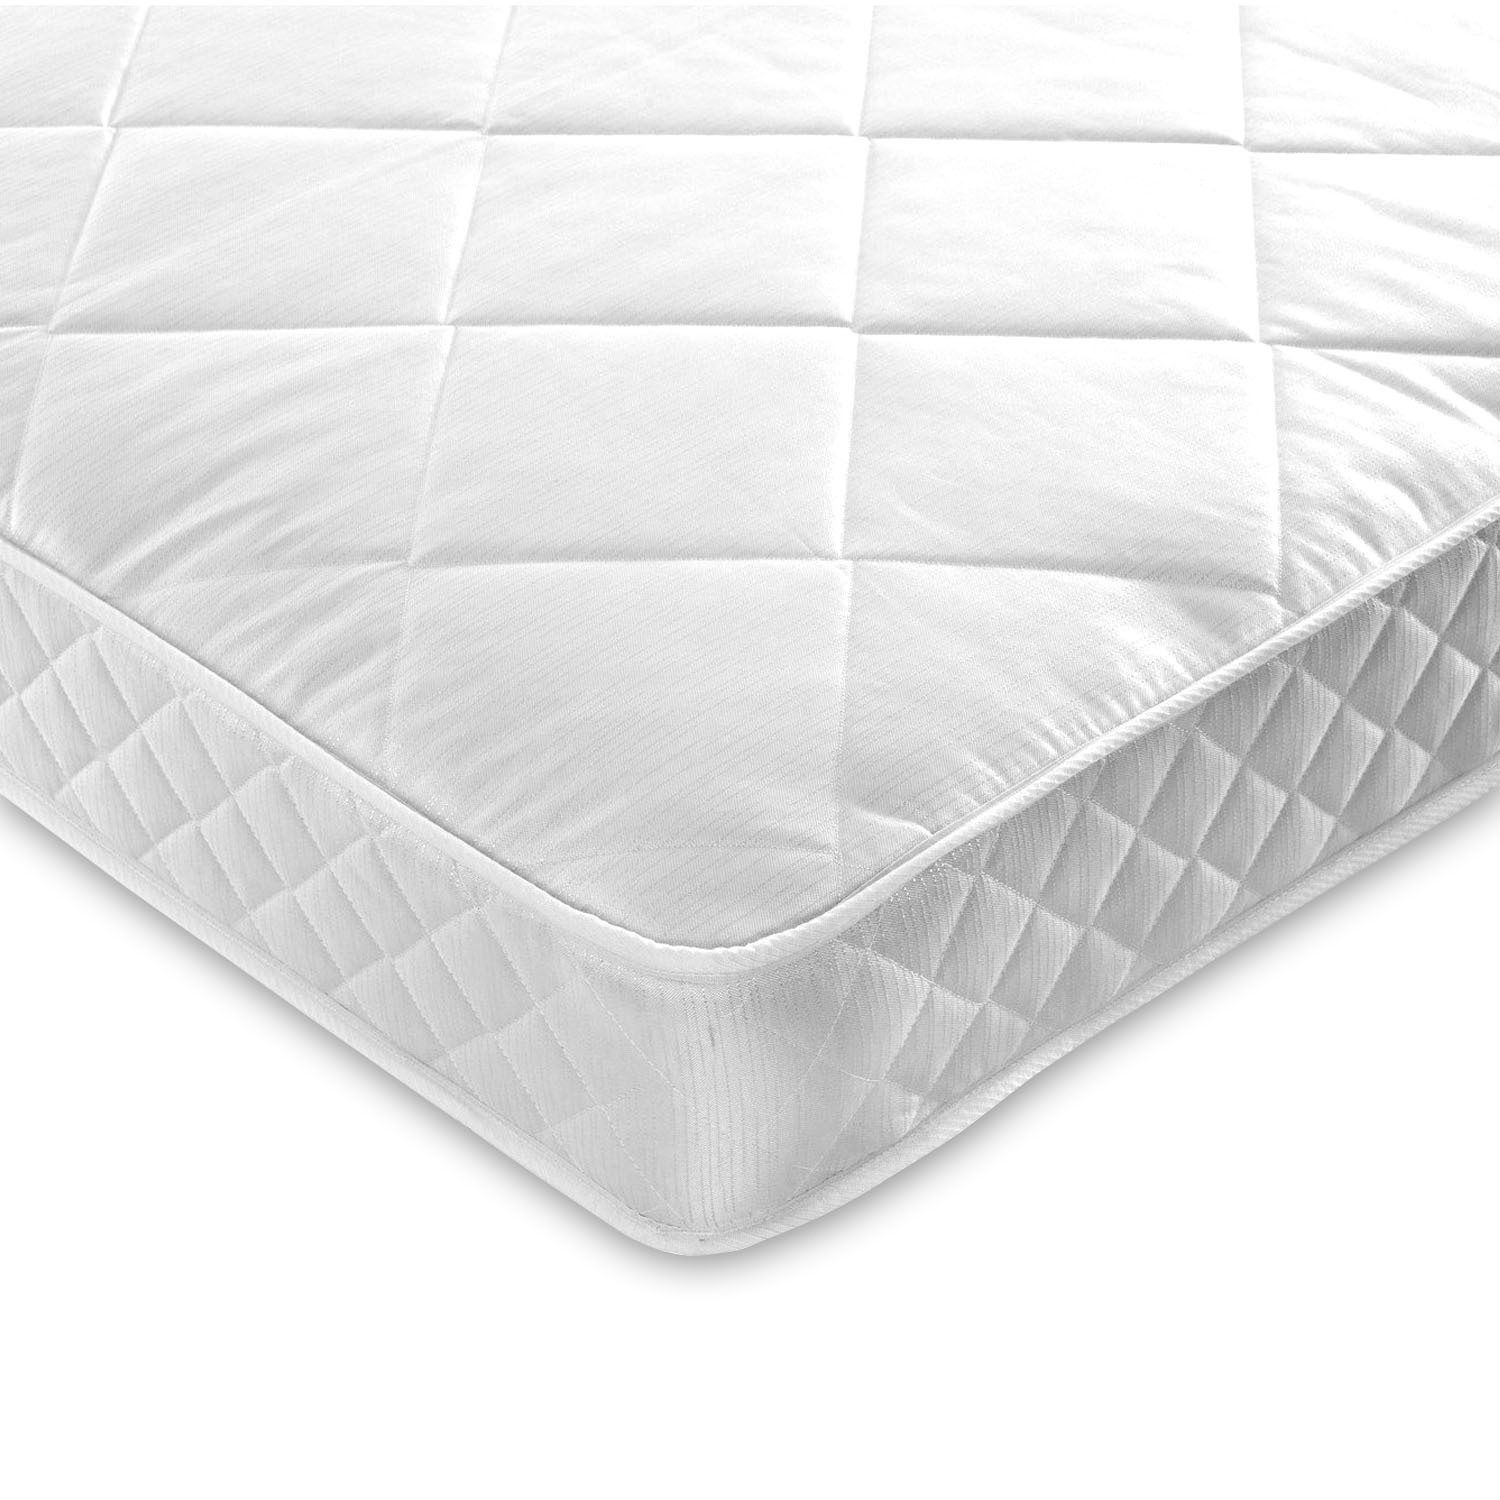 Luxury quilted small double 4ft coil sprung mattress - medium/firm